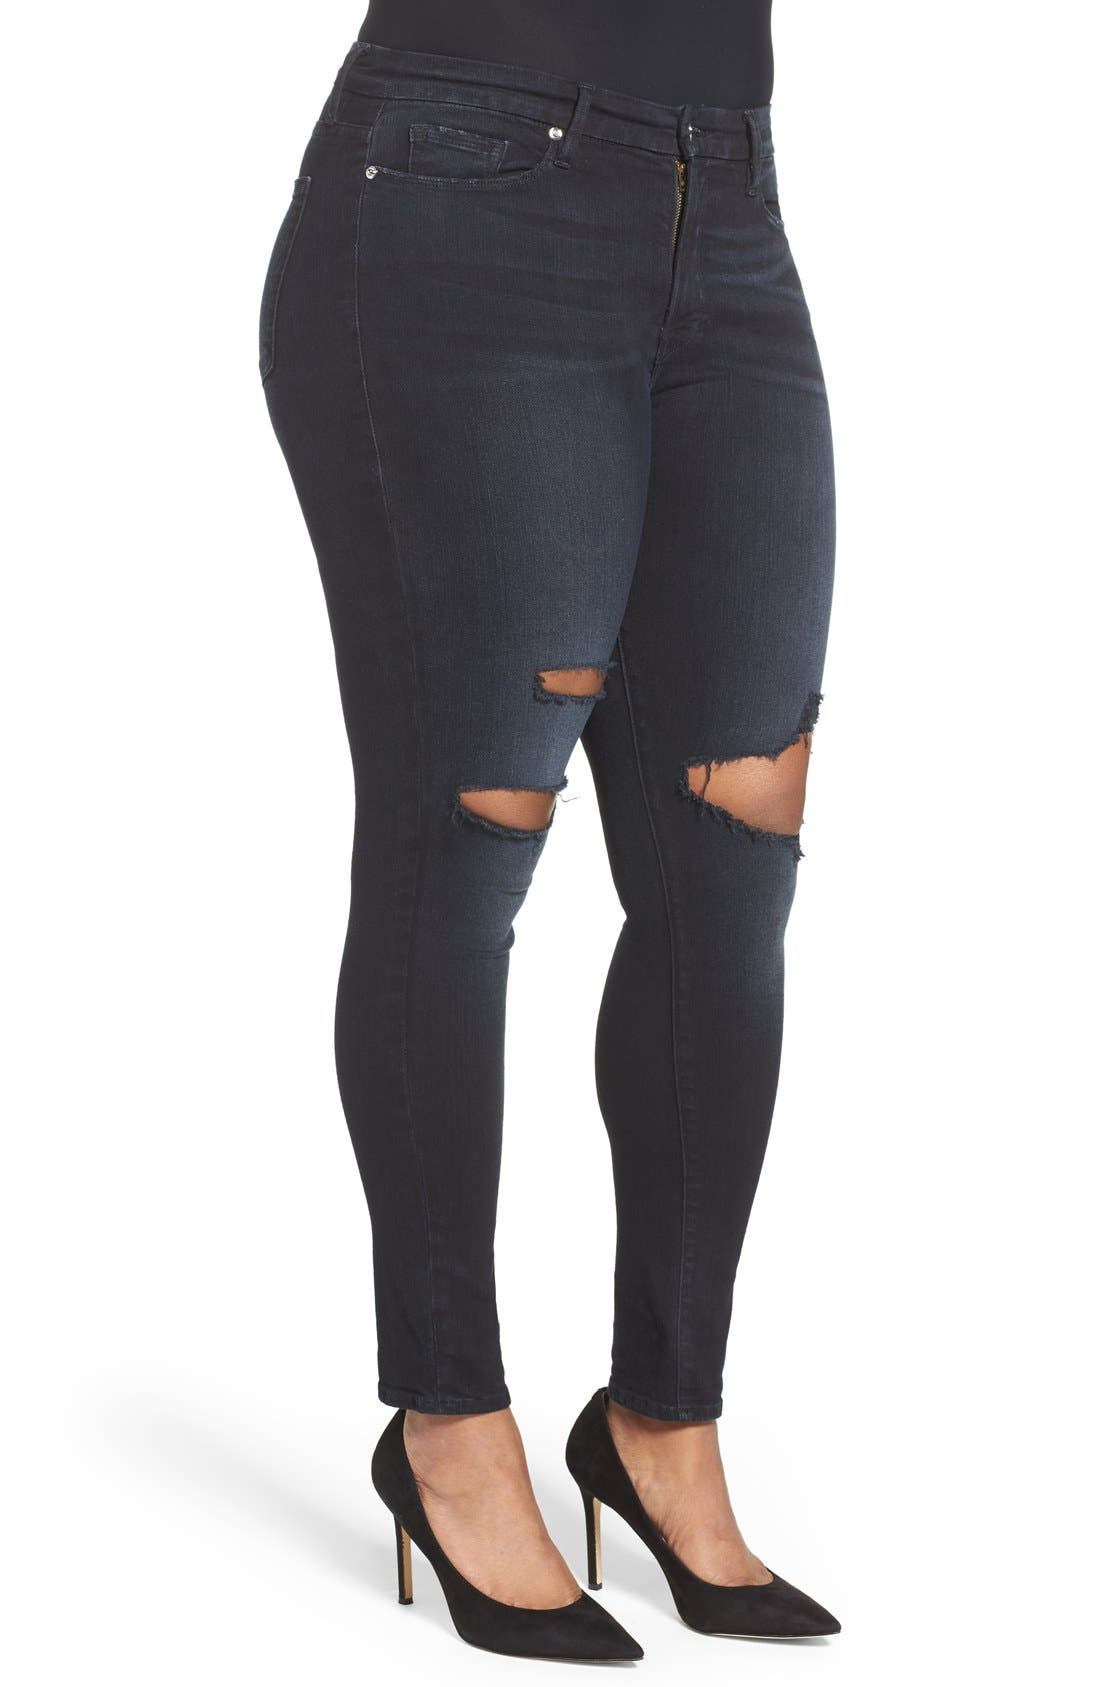 Good Legs High Rise Ripped Skinny Jeans,                             Alternate thumbnail 9, color,                             Blue 001 Washed Black